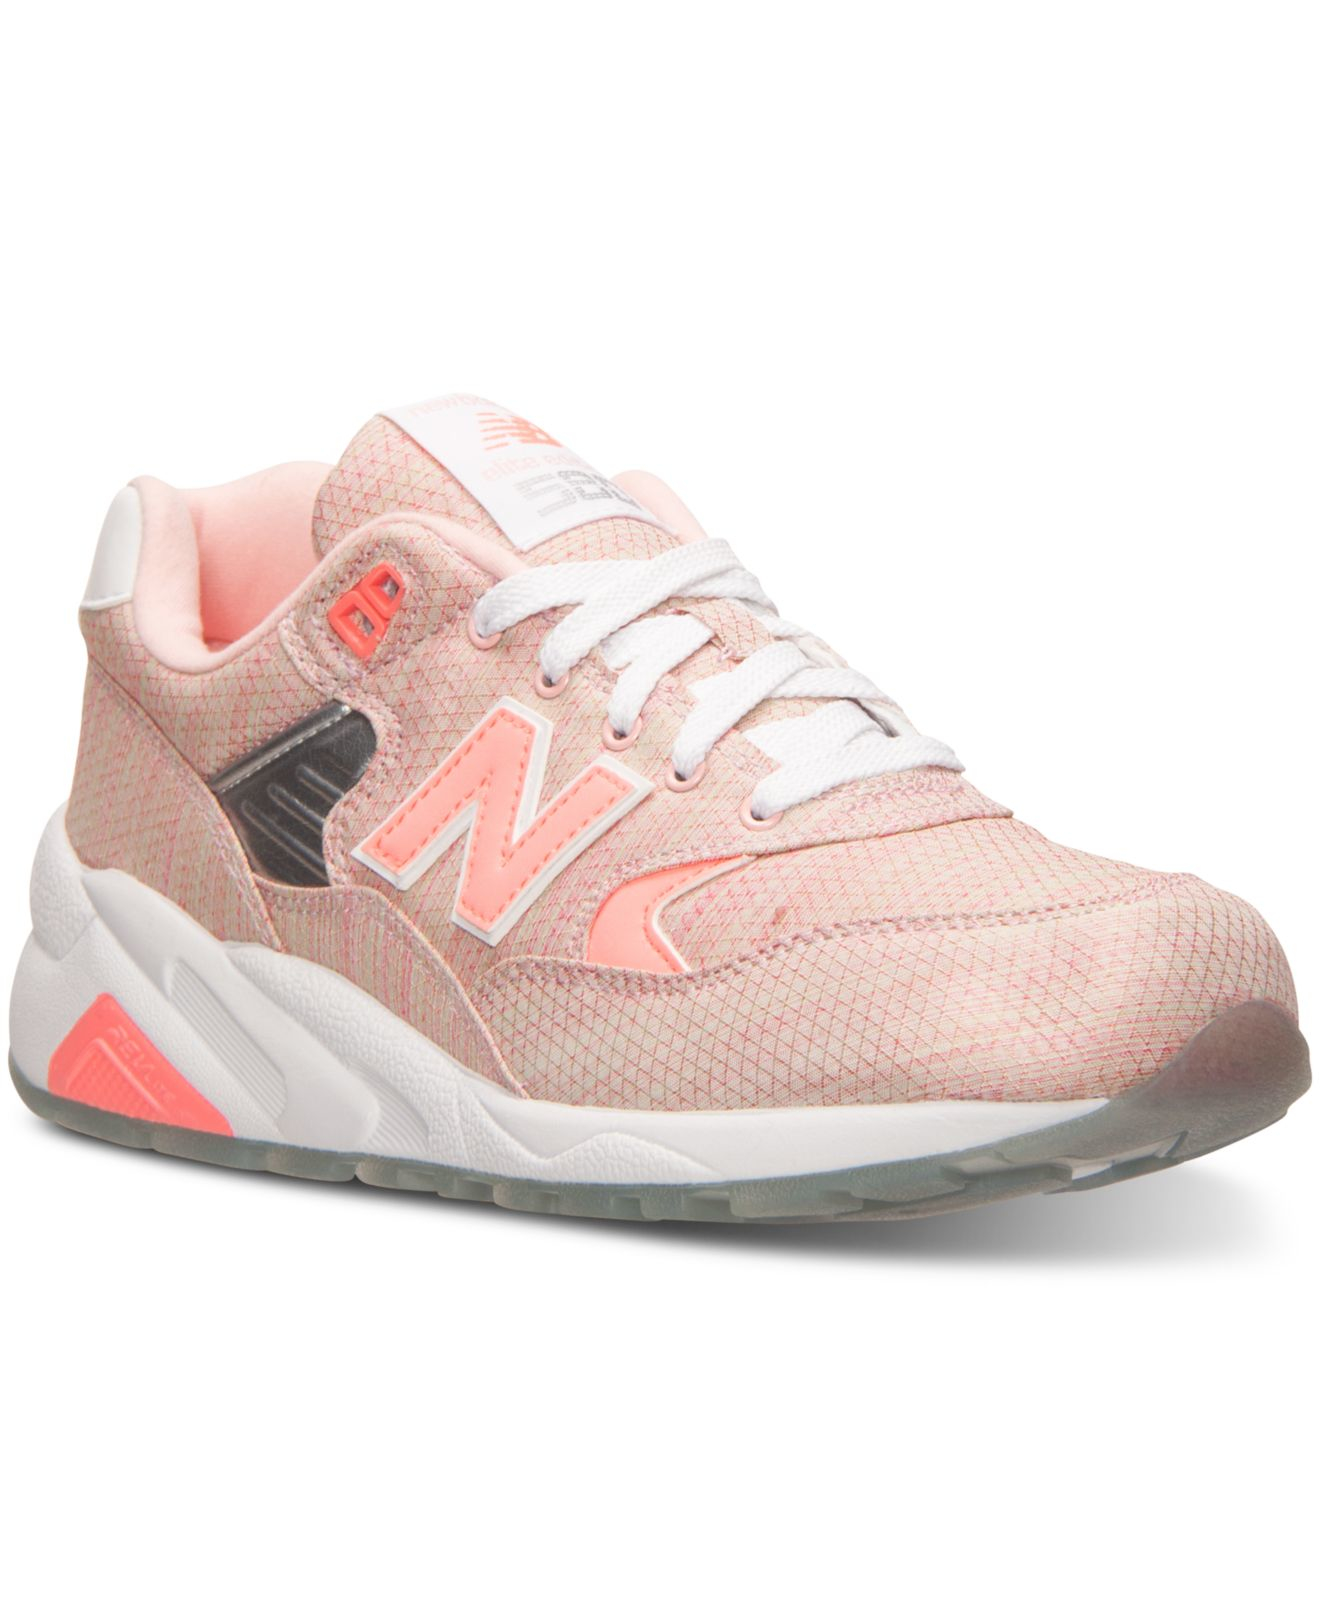 finest selection 9f7f0 c8f73 New Balance Women s 580 Running Sneakers From Finish Line in Pink - Lyst